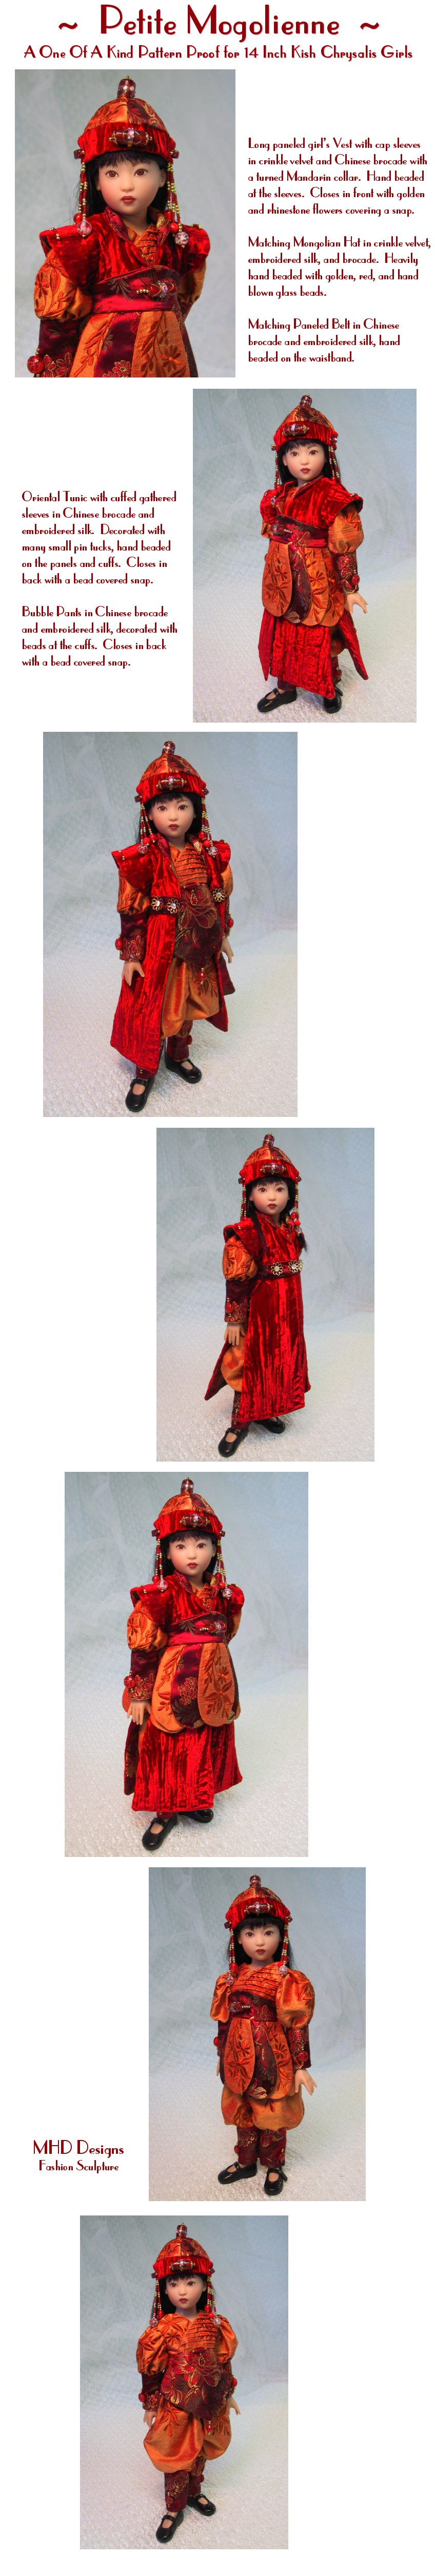 Little Mongolian - a One Of A Kind Pattern Proof by MHD Designs - High Resolution Photographs, your patience is appreciated!